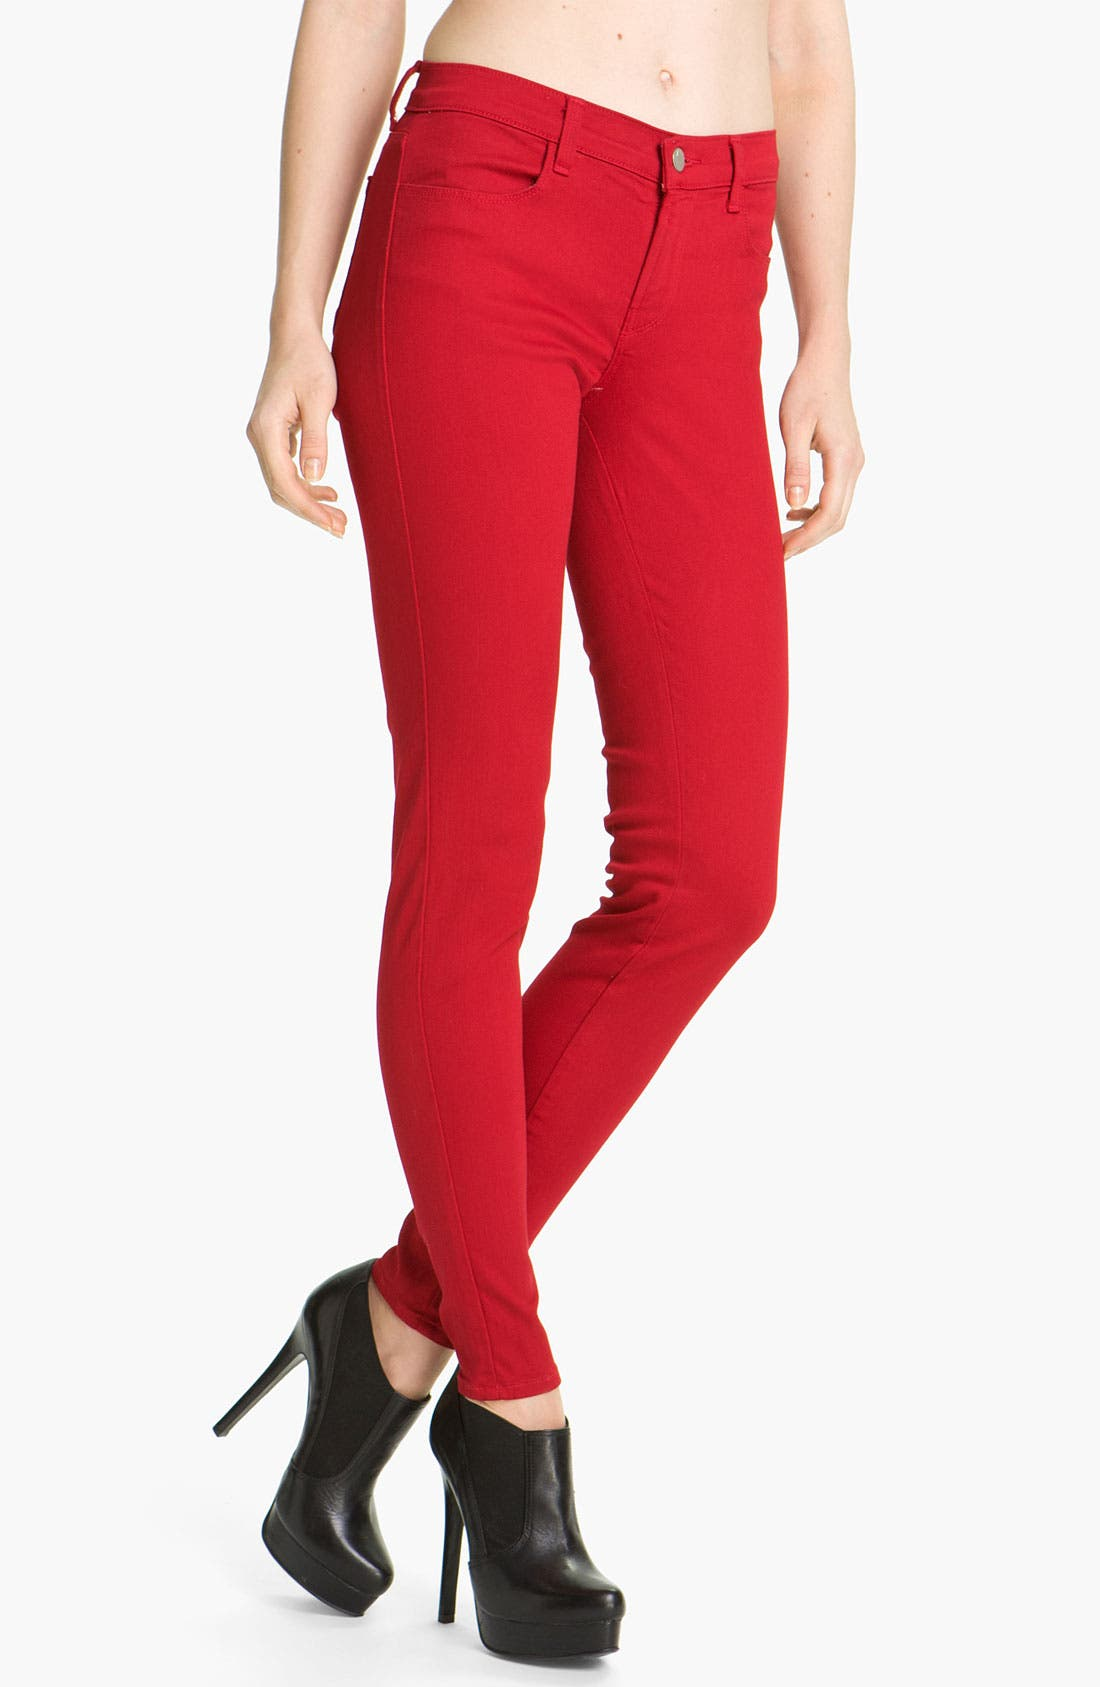 Alternate Image 1 Selected - J Brand Skinny Stretch Jeans